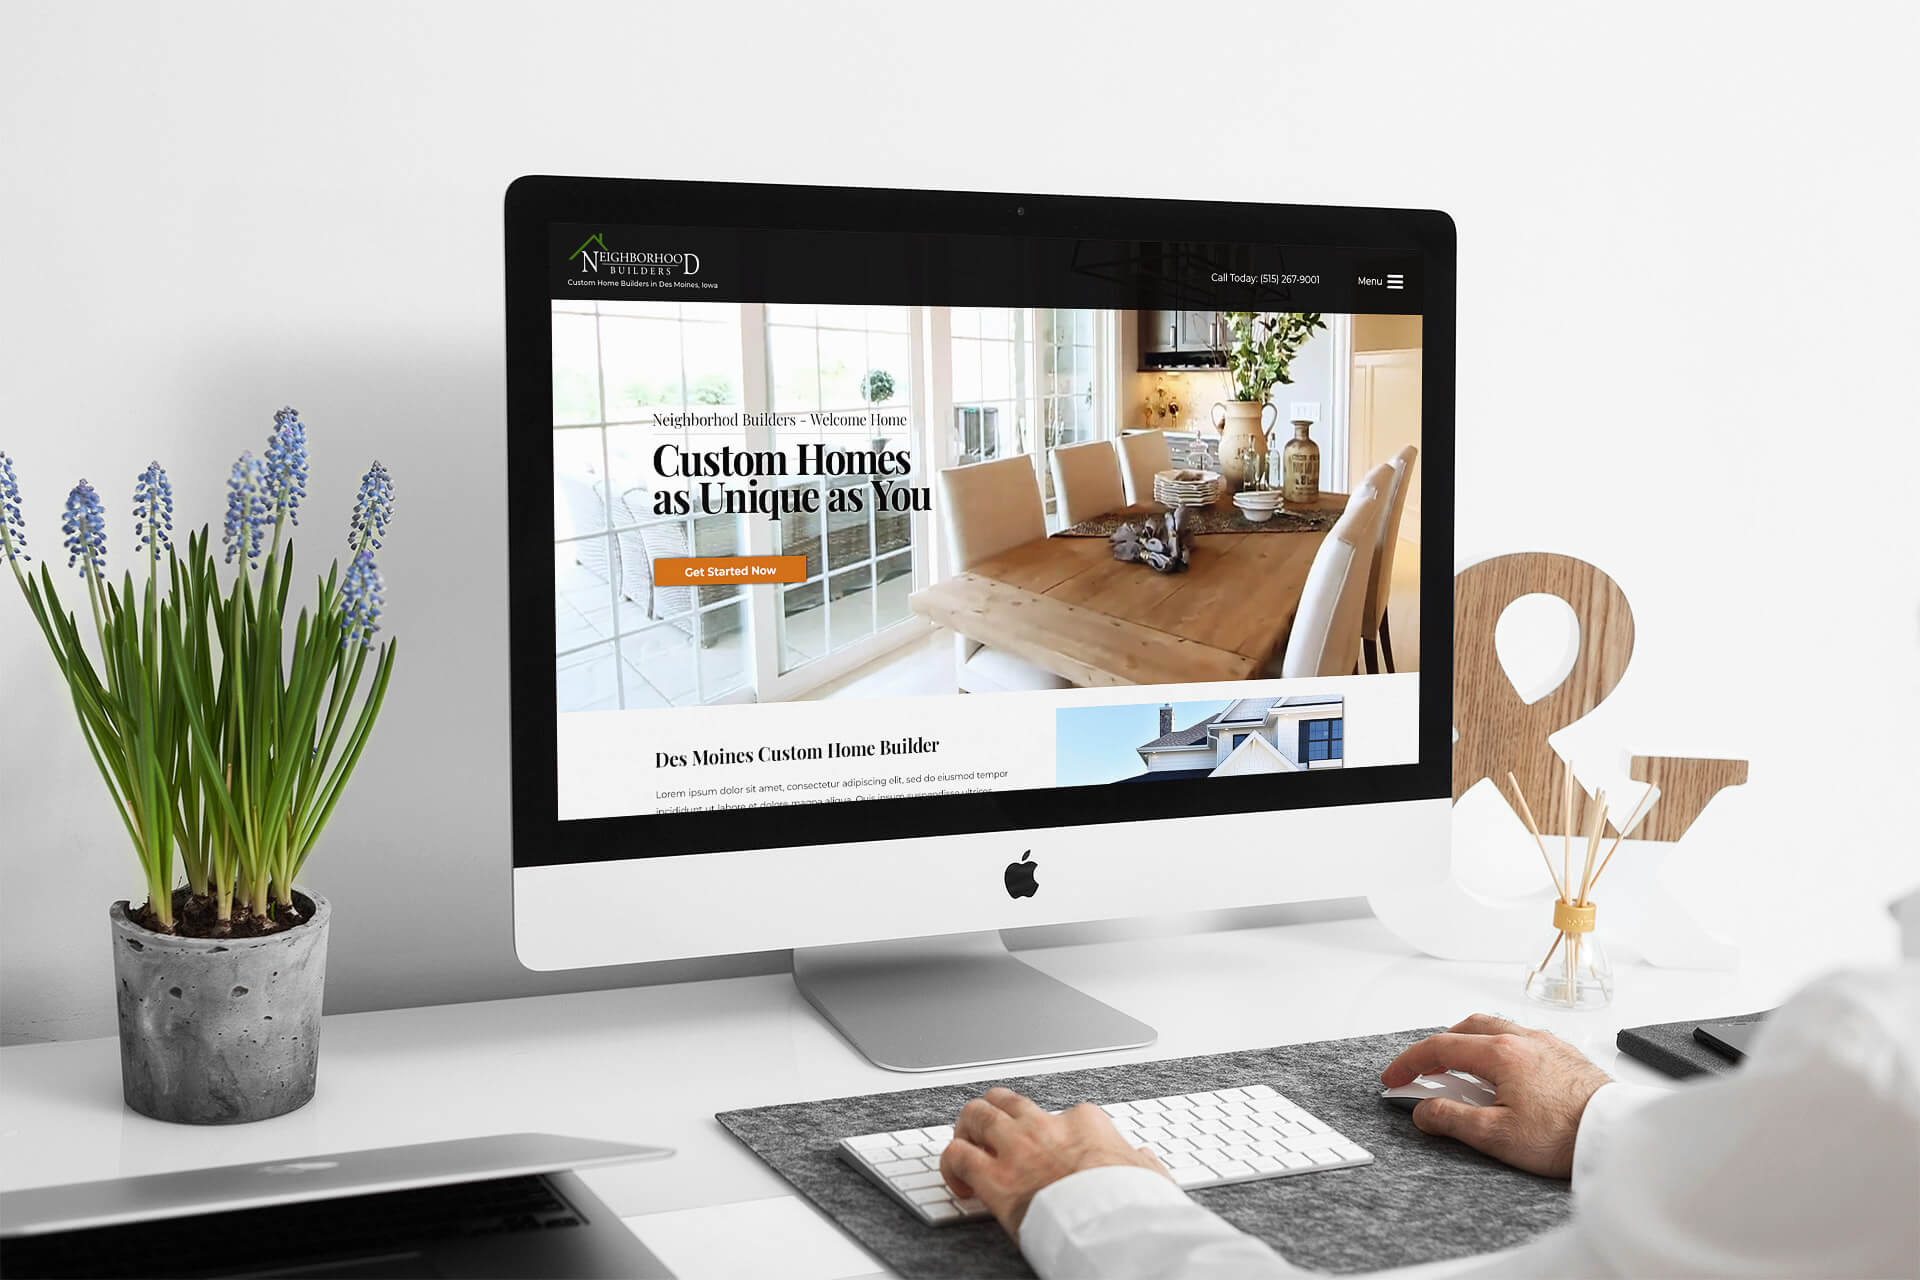 Home Builder Website Design for Neighborhood Builders